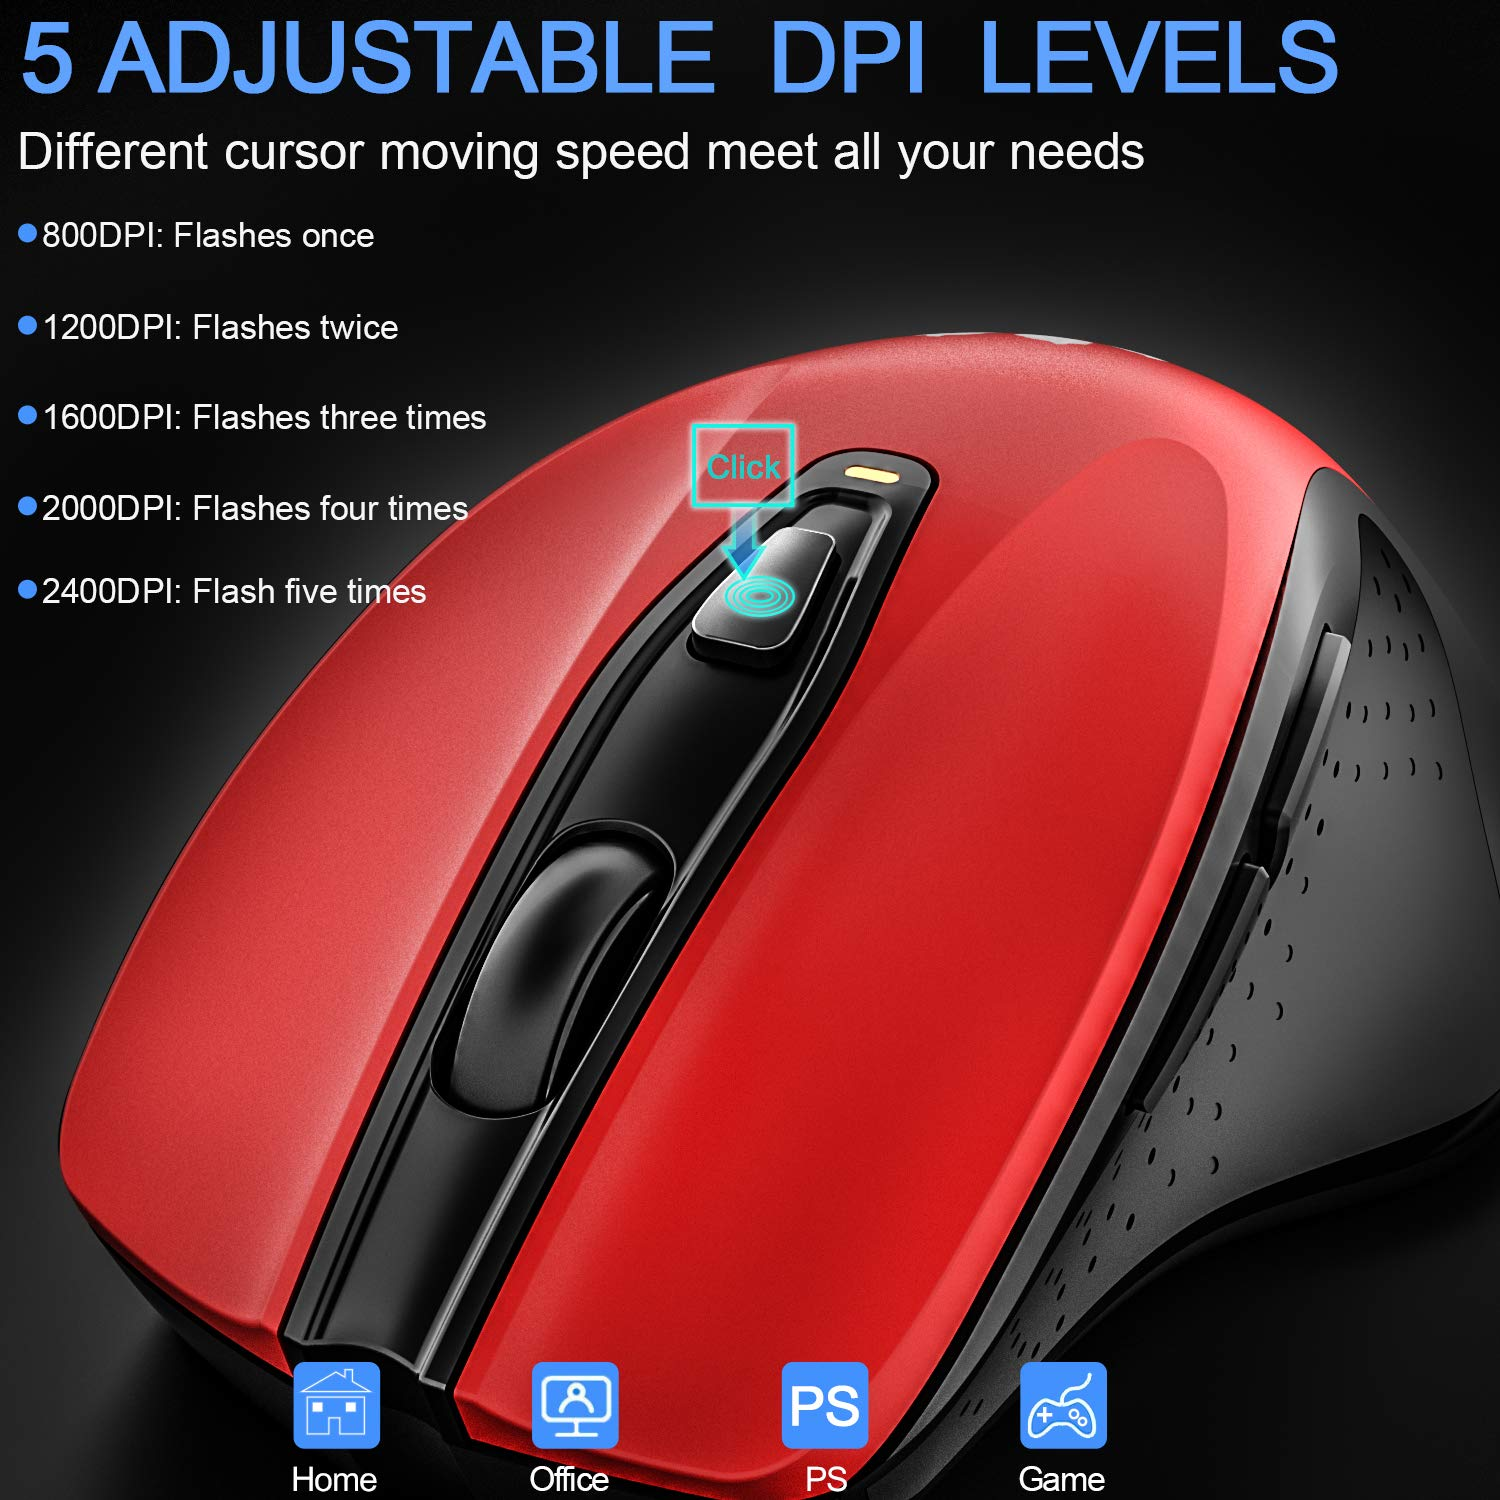 2.4G Wireless Mouse Portable Mobile Optical Mice with Nano USB Receiver 2400DPI 6 Buttons for Notebook PC Laptop Computer MacBook, Red